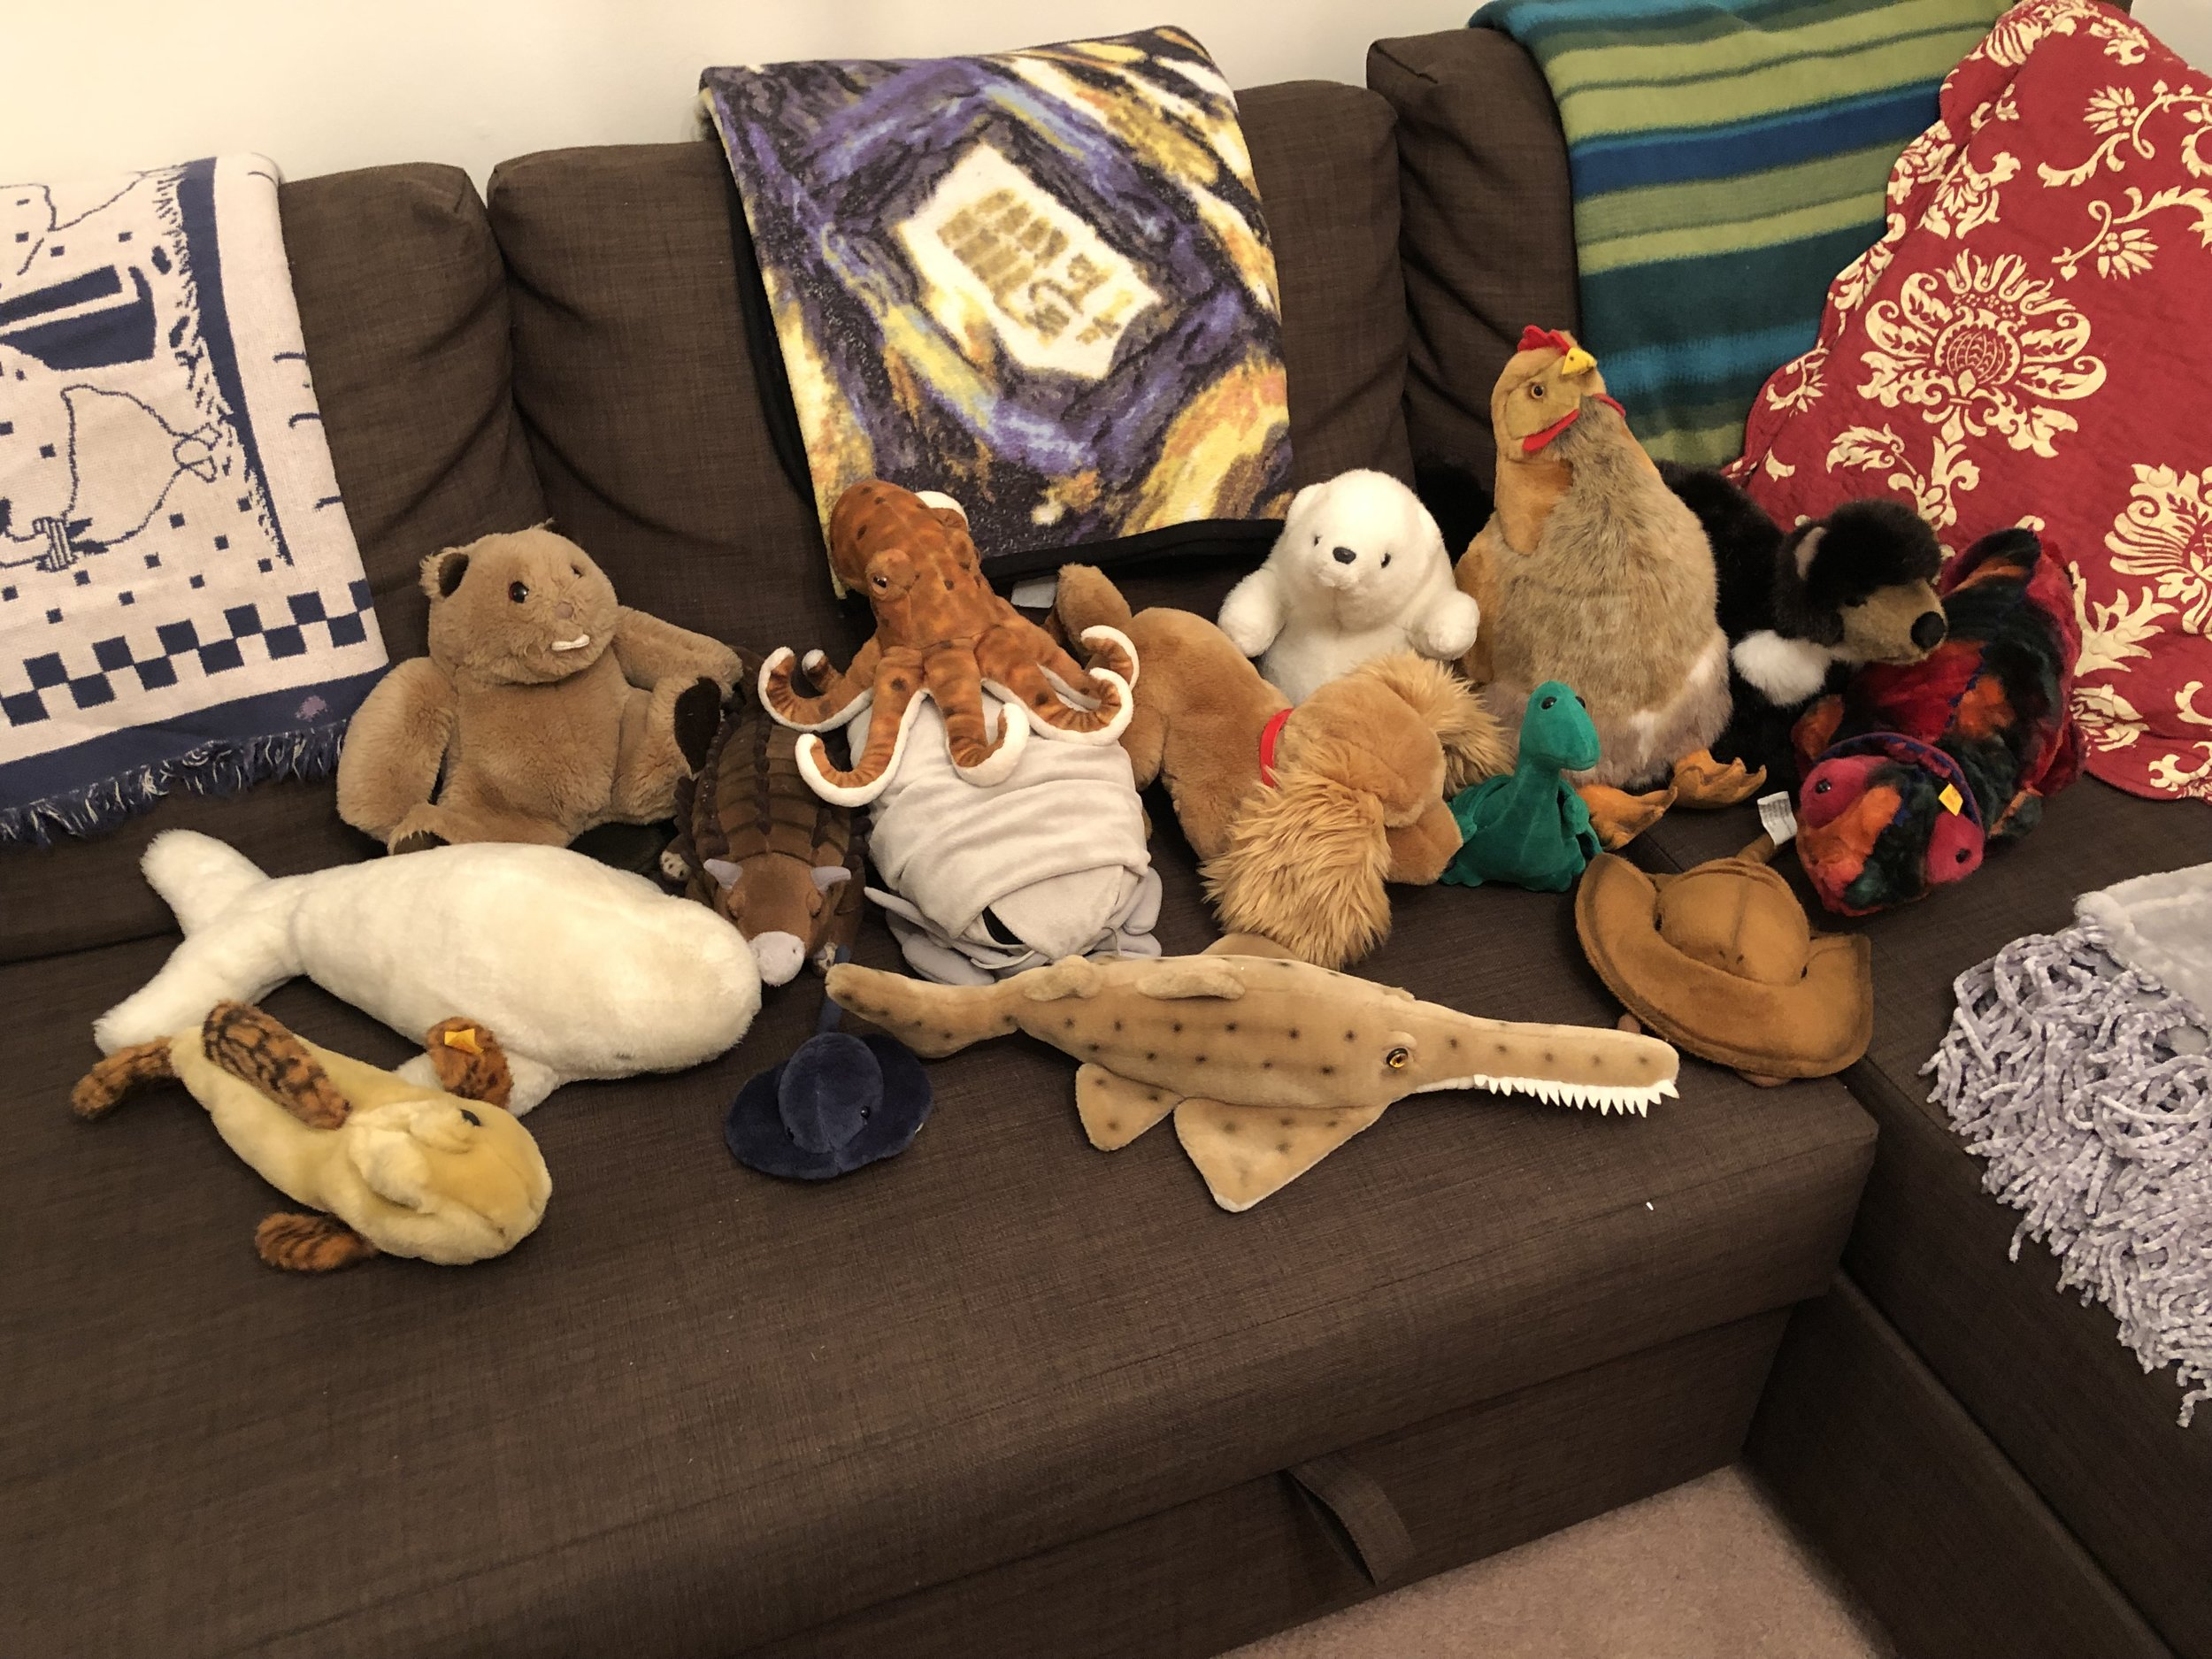 From left to right, that's Zappy the mudskipper, Baby the whale, Jack the beaver, Arnold the ankylosaur, Rey the ray, Polpe the octopus, Isa the sea roach, Choppy the saw shark, Jenny the dog, Ben the polar bear, Dragon the rhamphorhynchus, Favor the chicken, Magnet the horseshoe crab, Martin the pine marten, and Jackson the chameleon, all of whom you now care about.